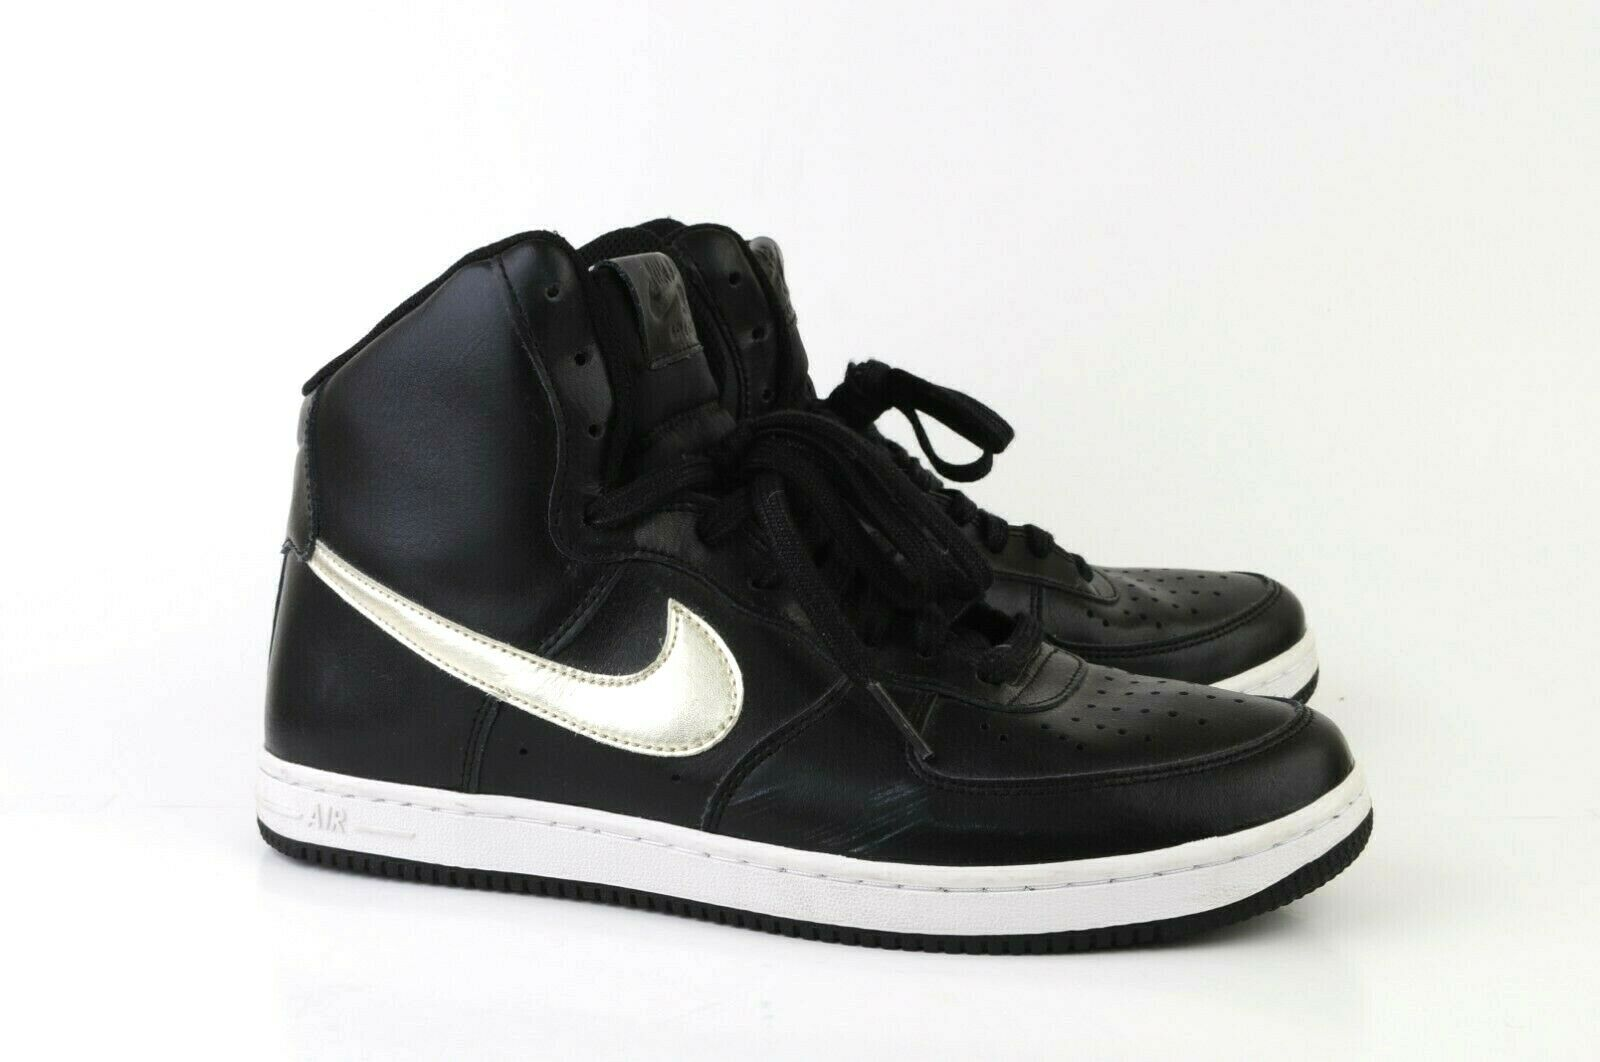 Nike Air Force 1 Black Basketball shoes Women's Size 9 High Top 525395-011